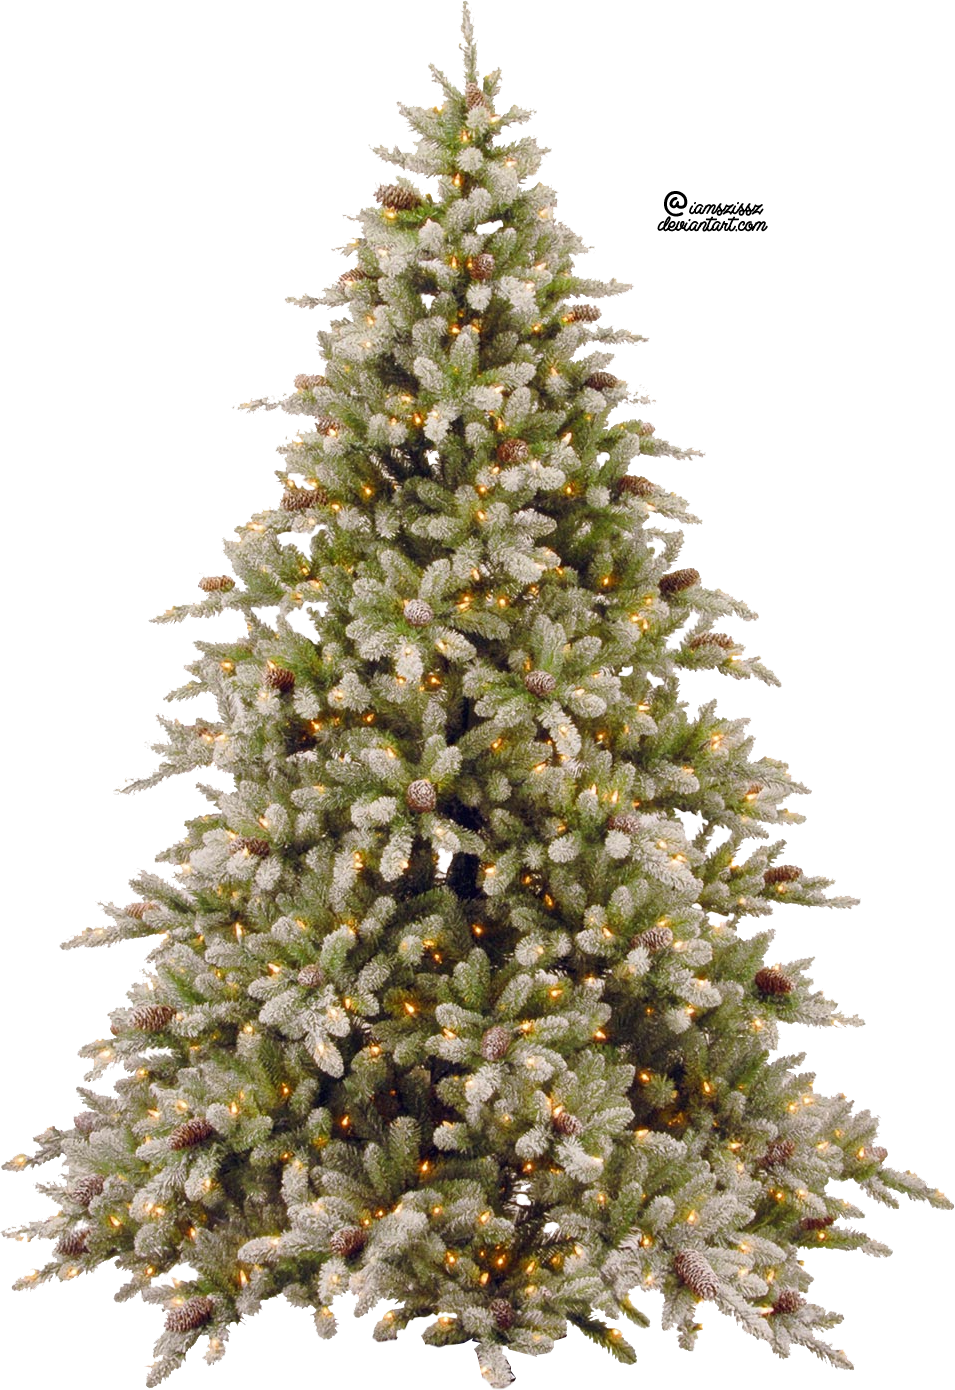 Christmas Tree Transparent PNG Image